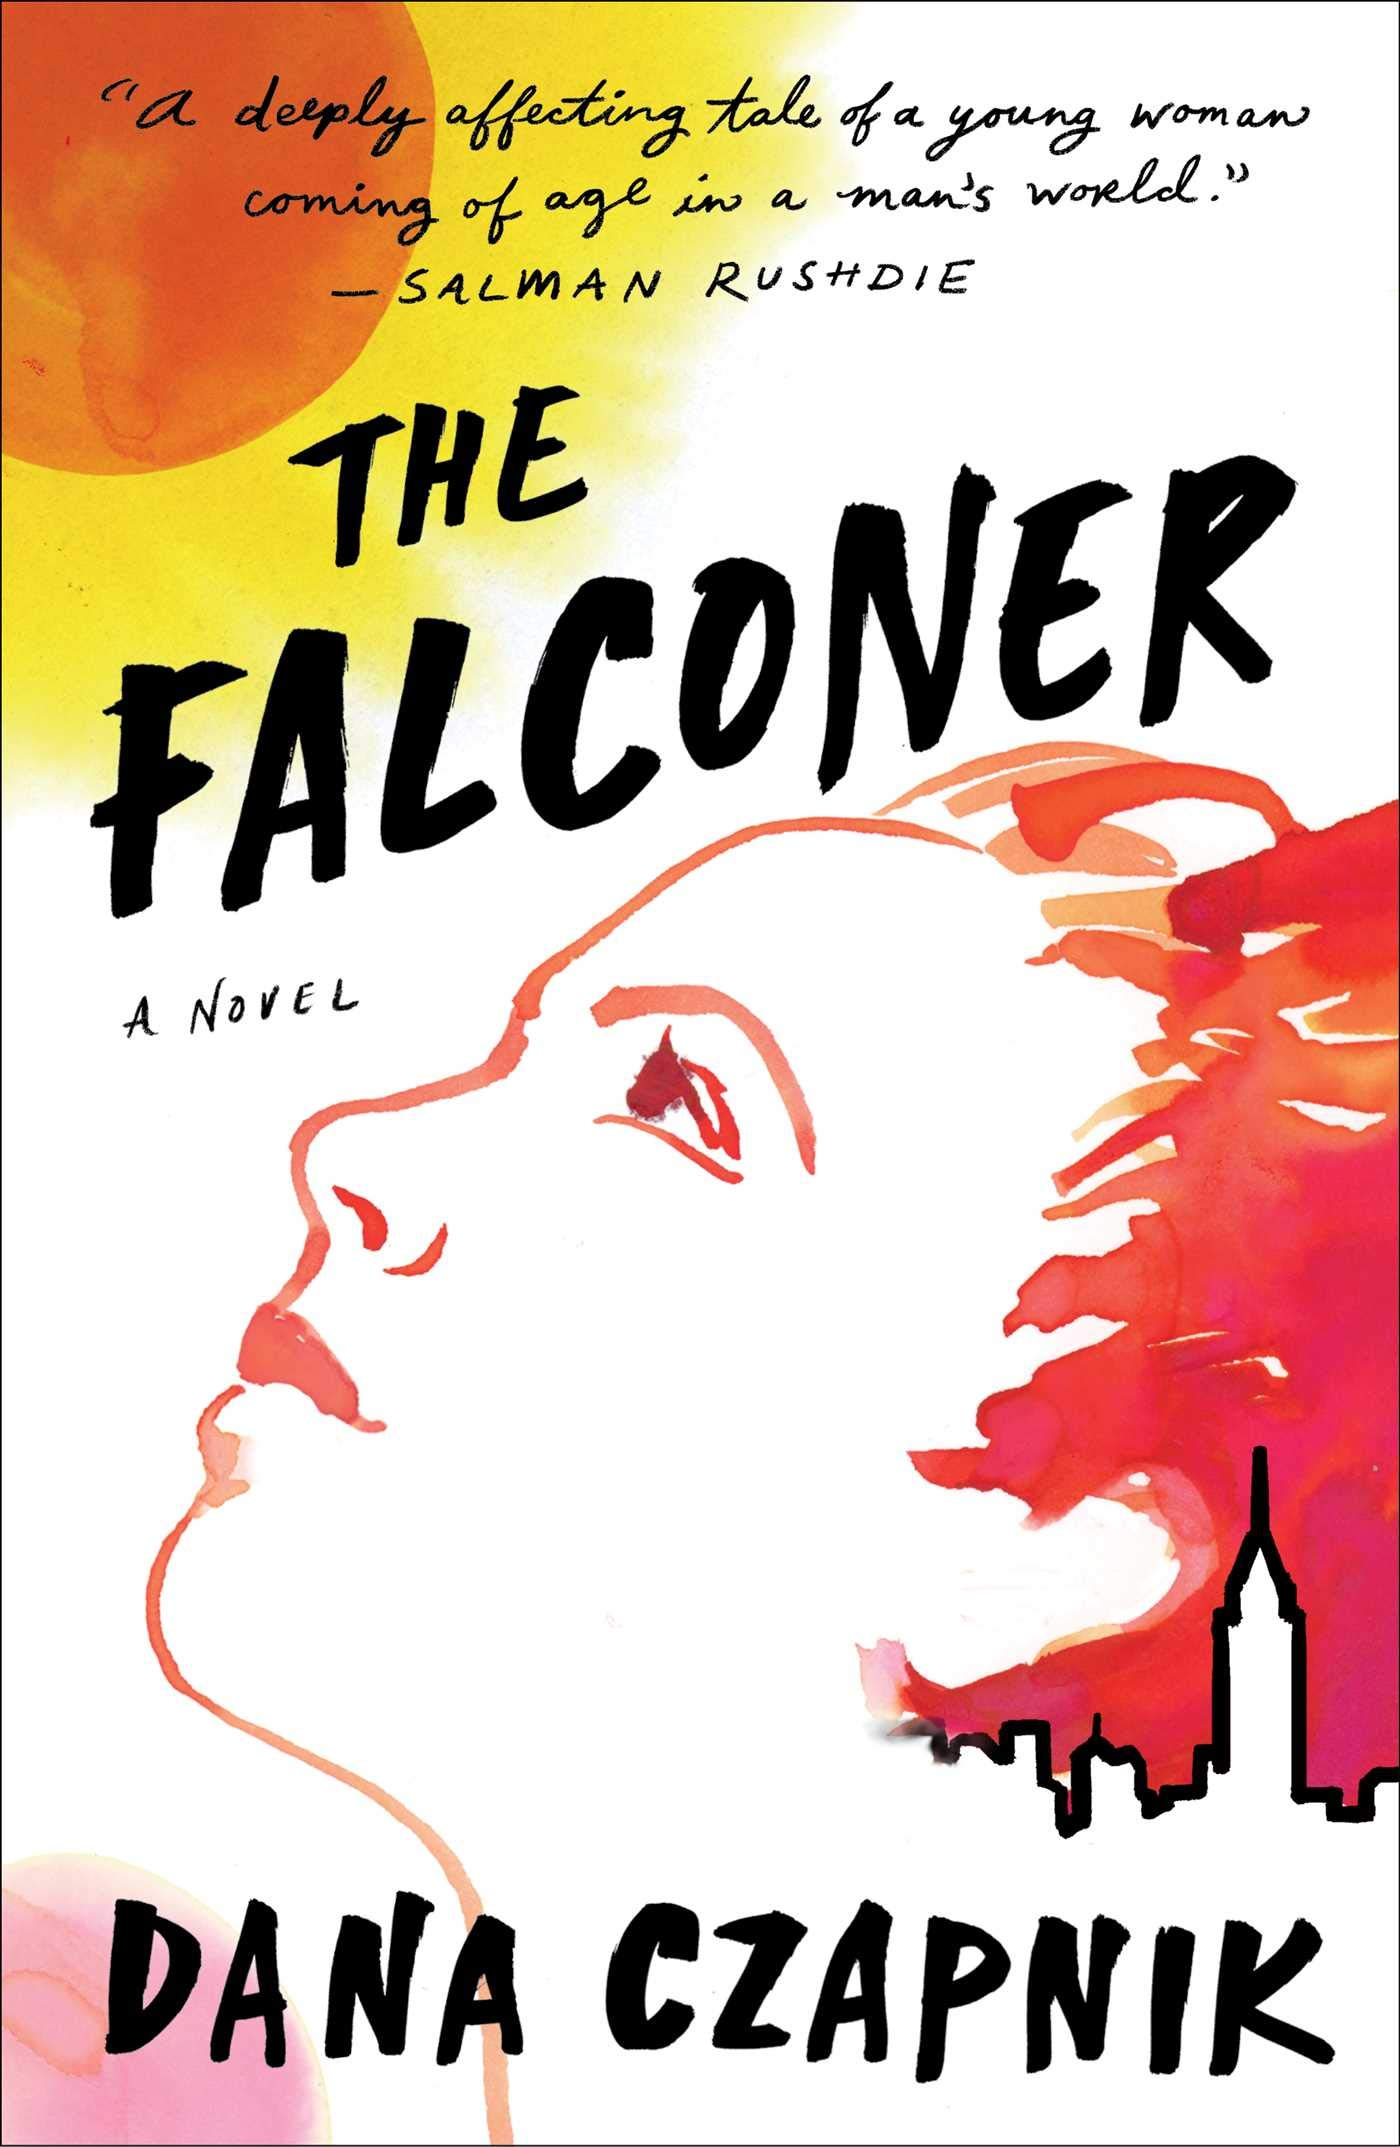 Dana Czapnik – The Falconer